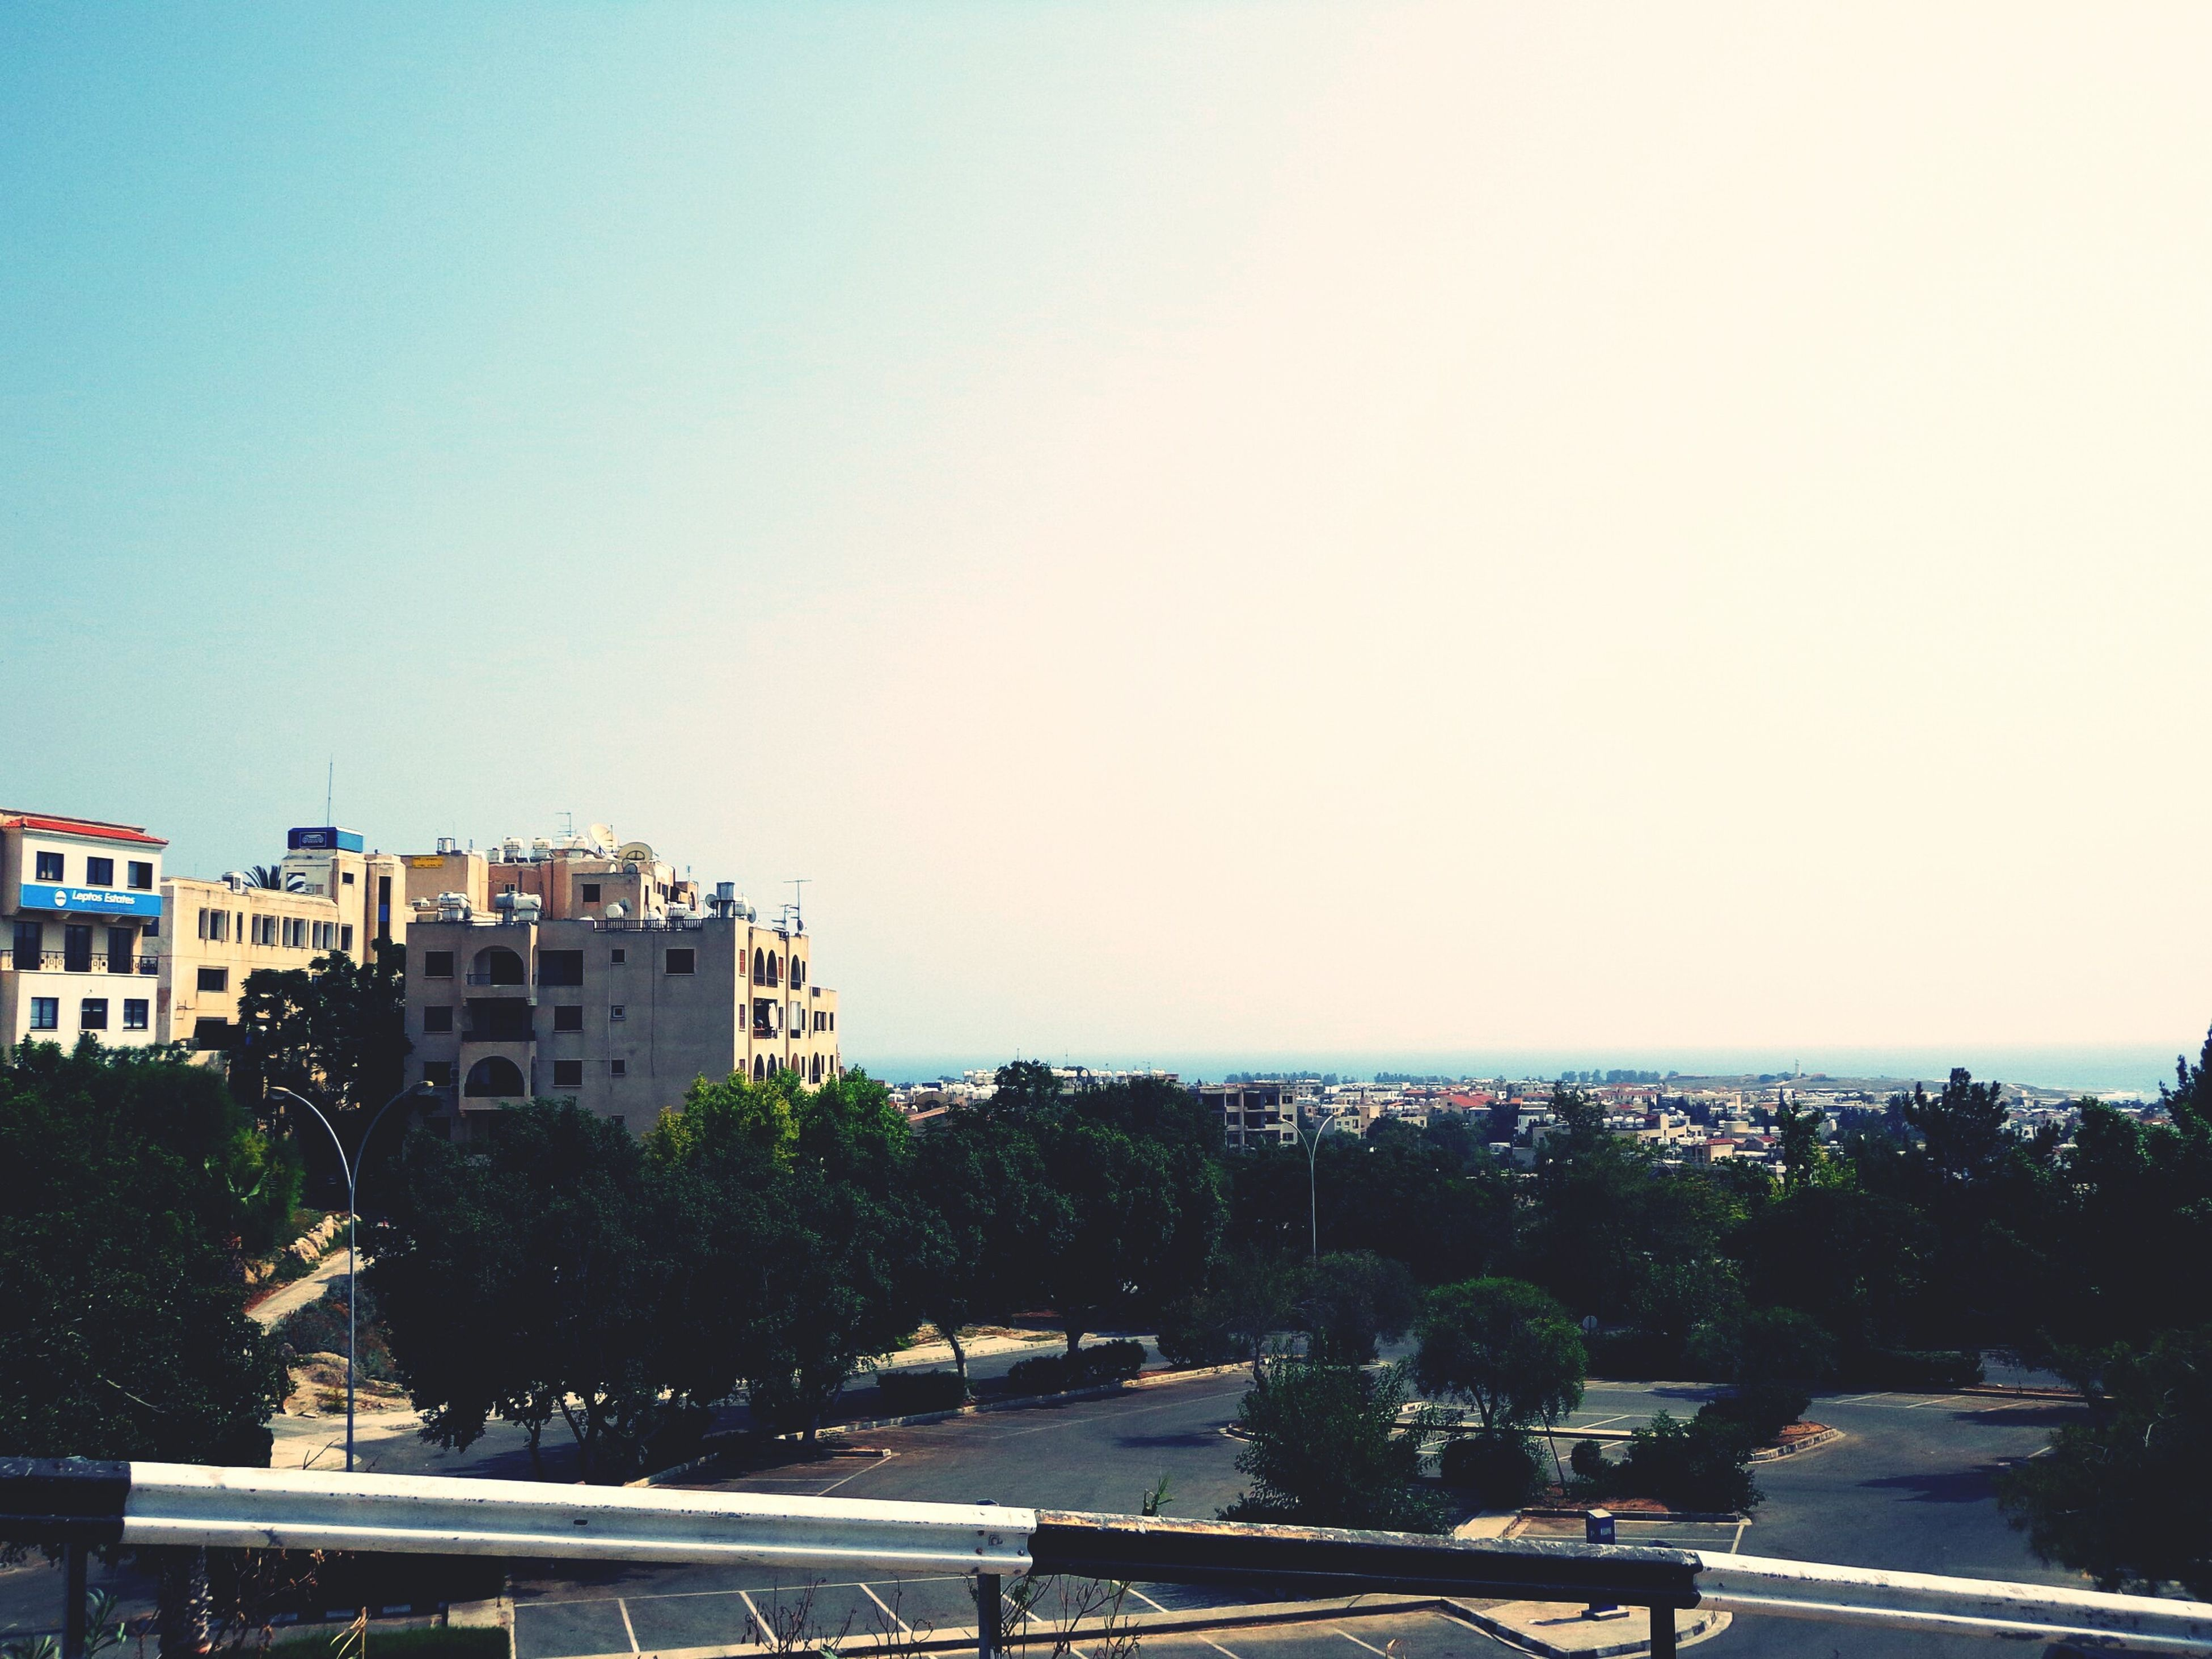 building exterior, clear sky, architecture, built structure, copy space, city, cityscape, residential district, residential structure, tree, residential building, high angle view, house, street, road, car, crowded, city life, day, outdoors